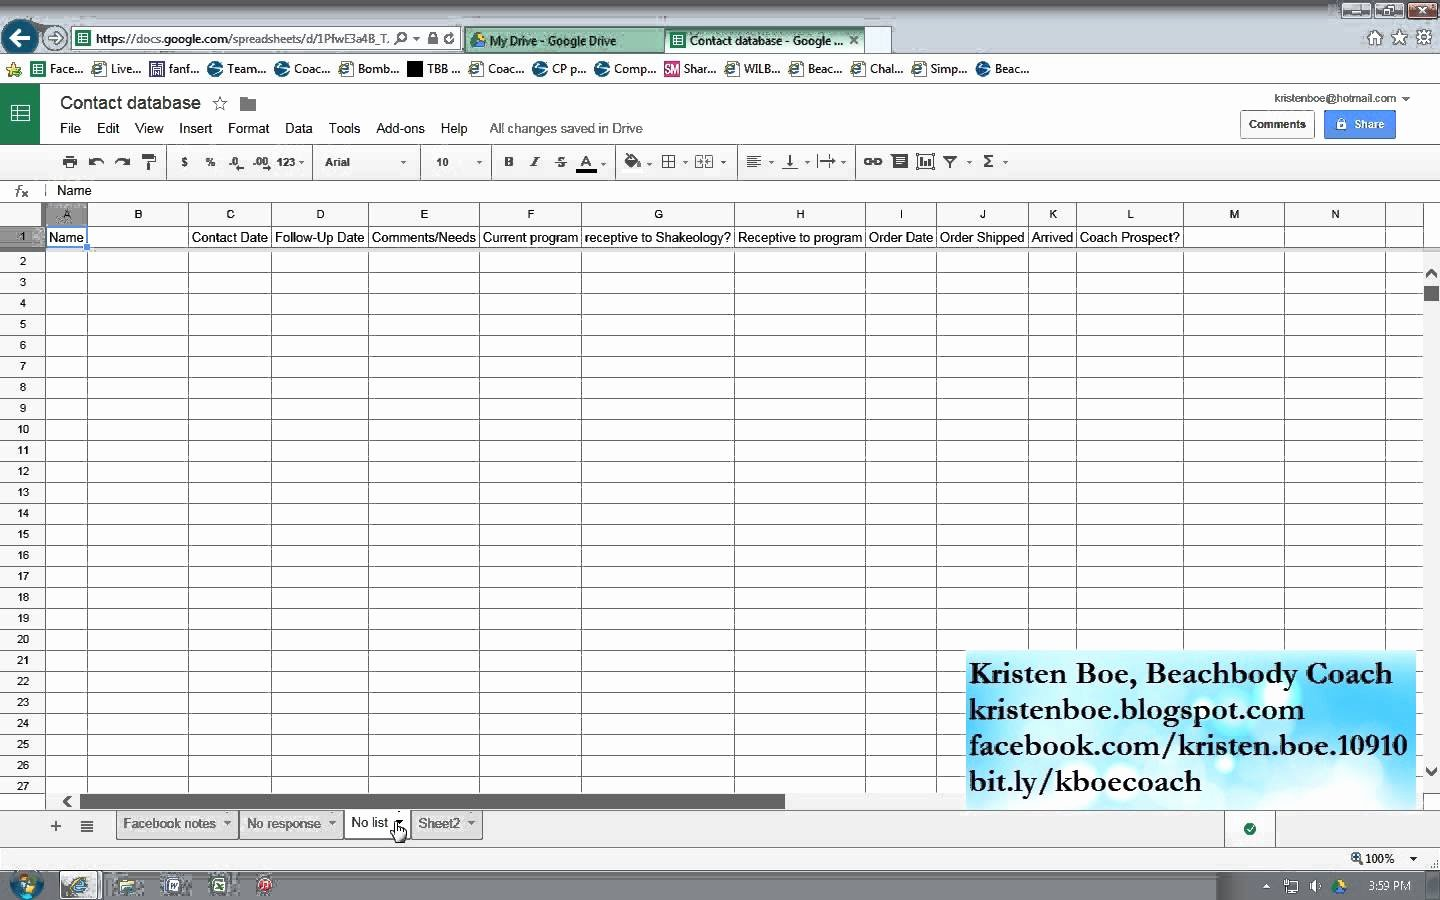 Sales Lead Tracking Excel Template Inspirational Sales Lead Tracking Excel Template